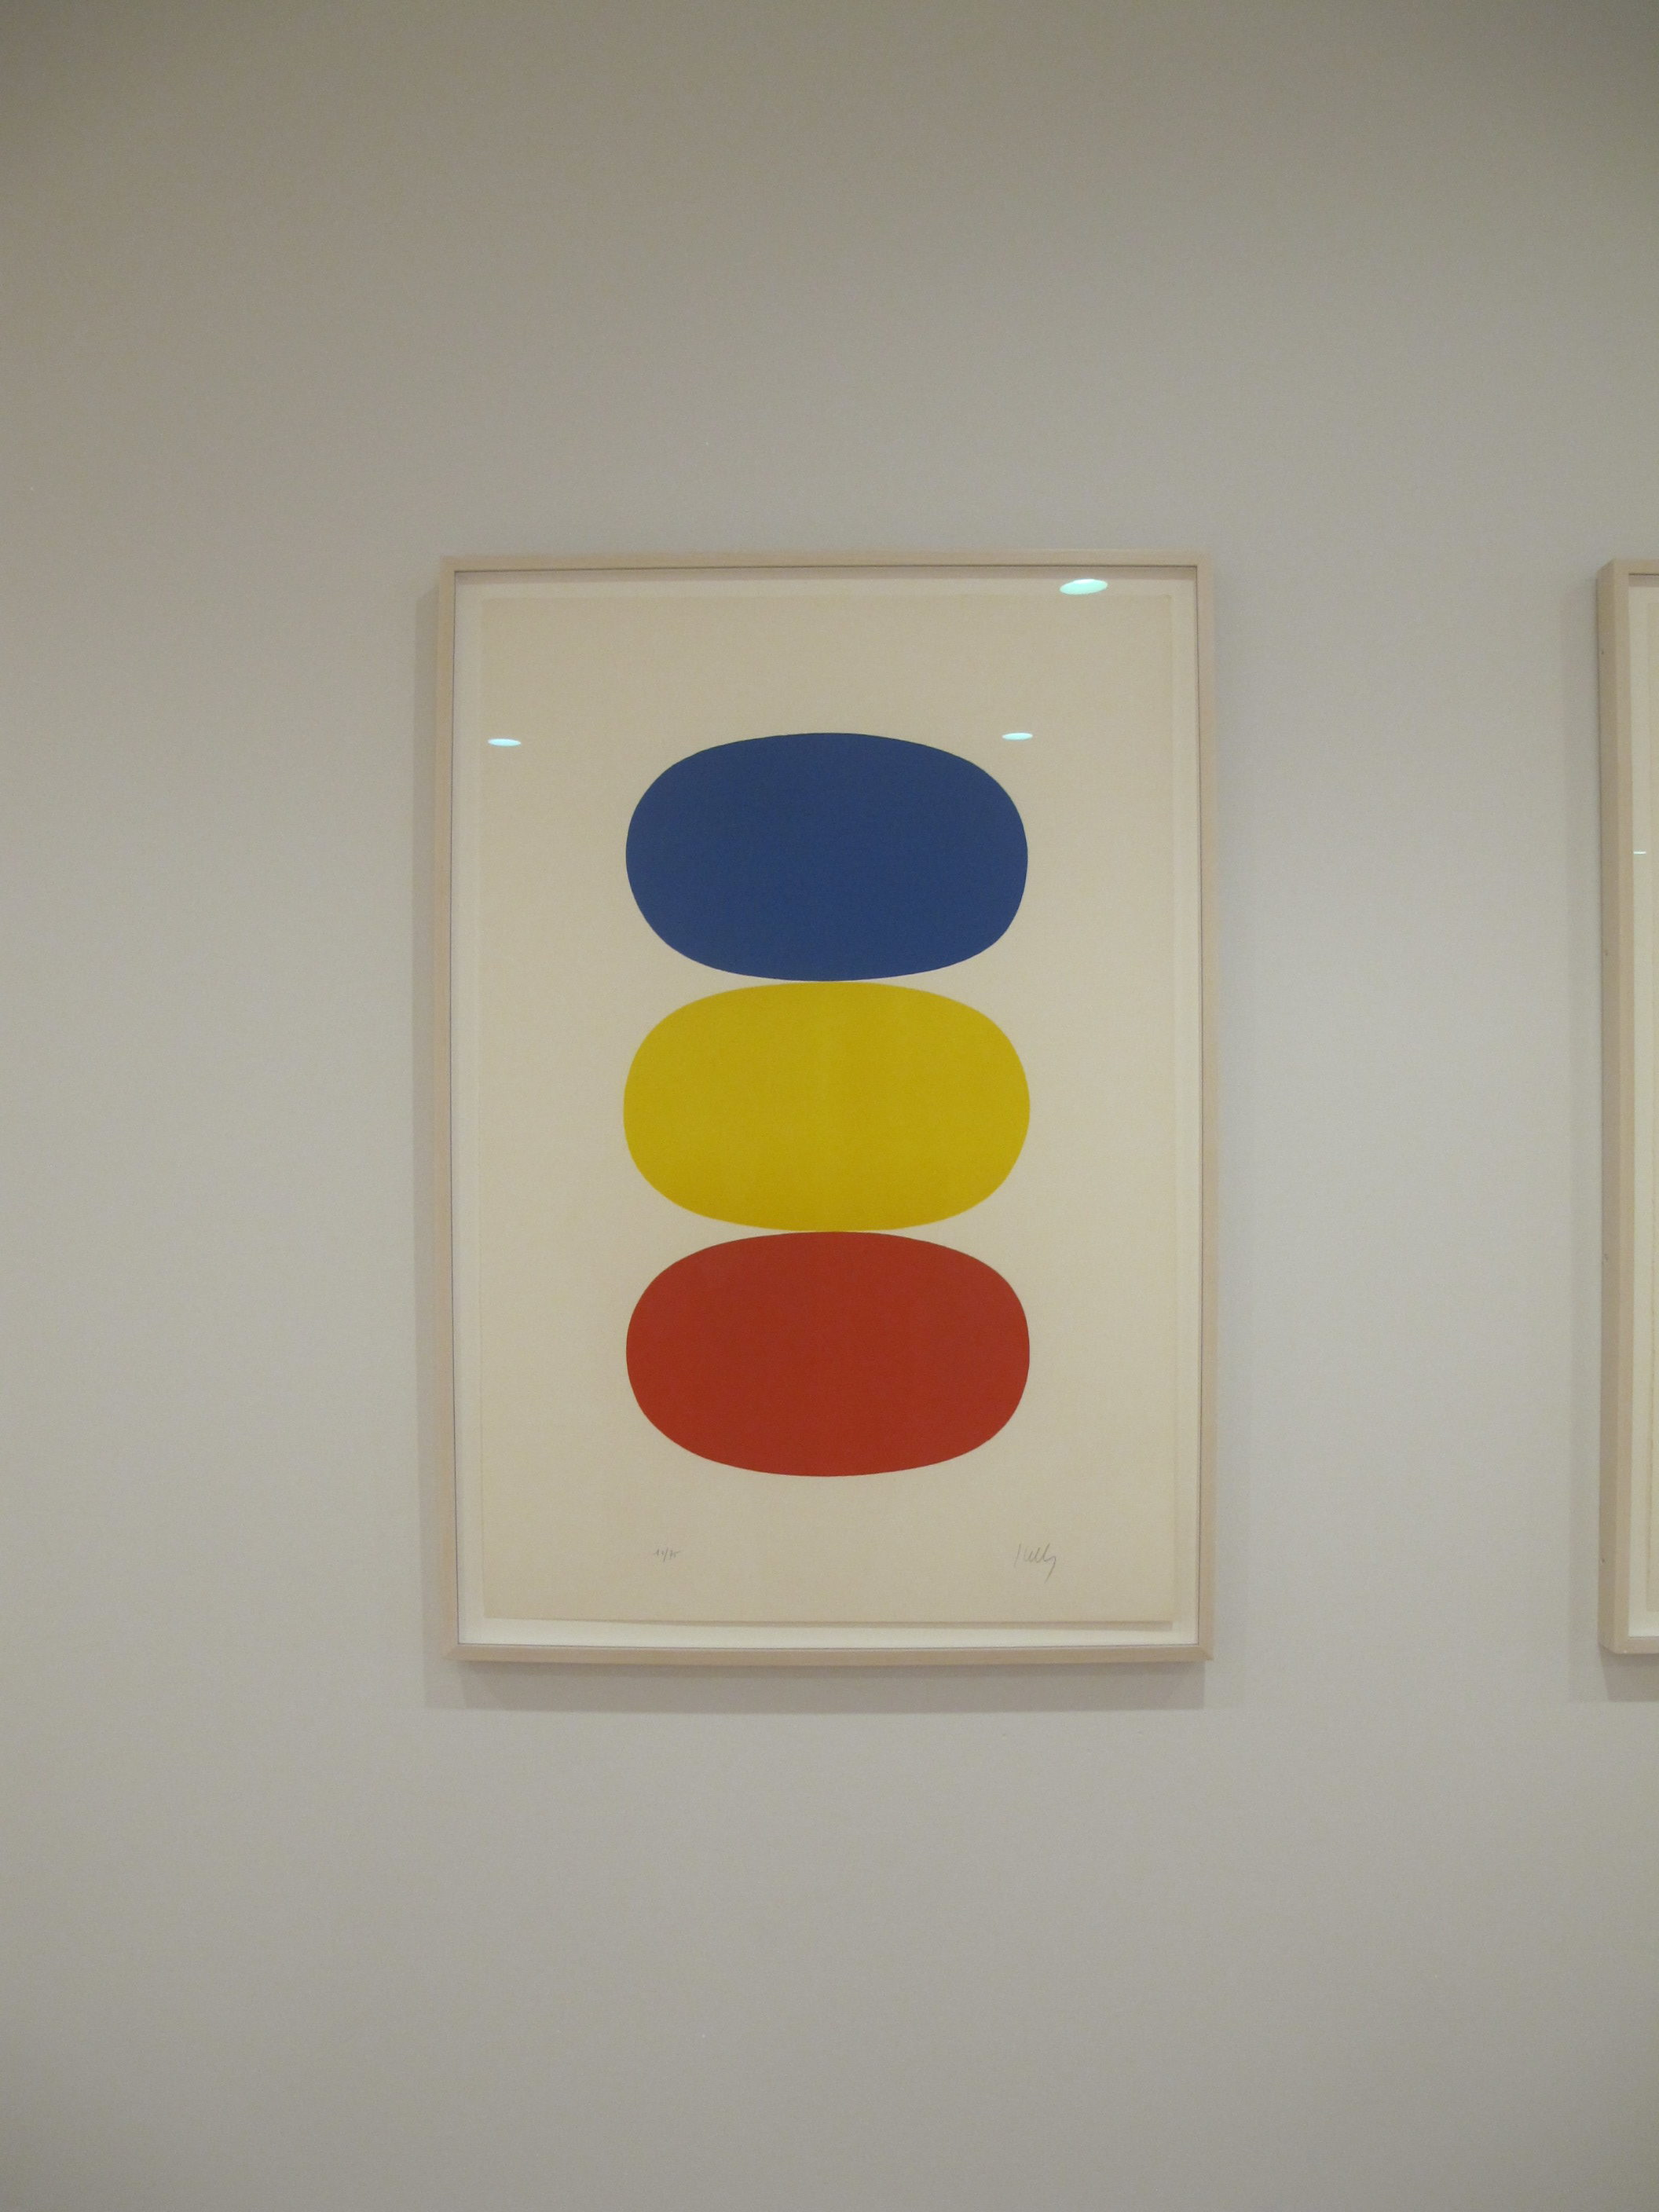 Blue and Yellow and Red-Orange, Ellsworth Kelly, 1964-65. One of 27 color lithographs.